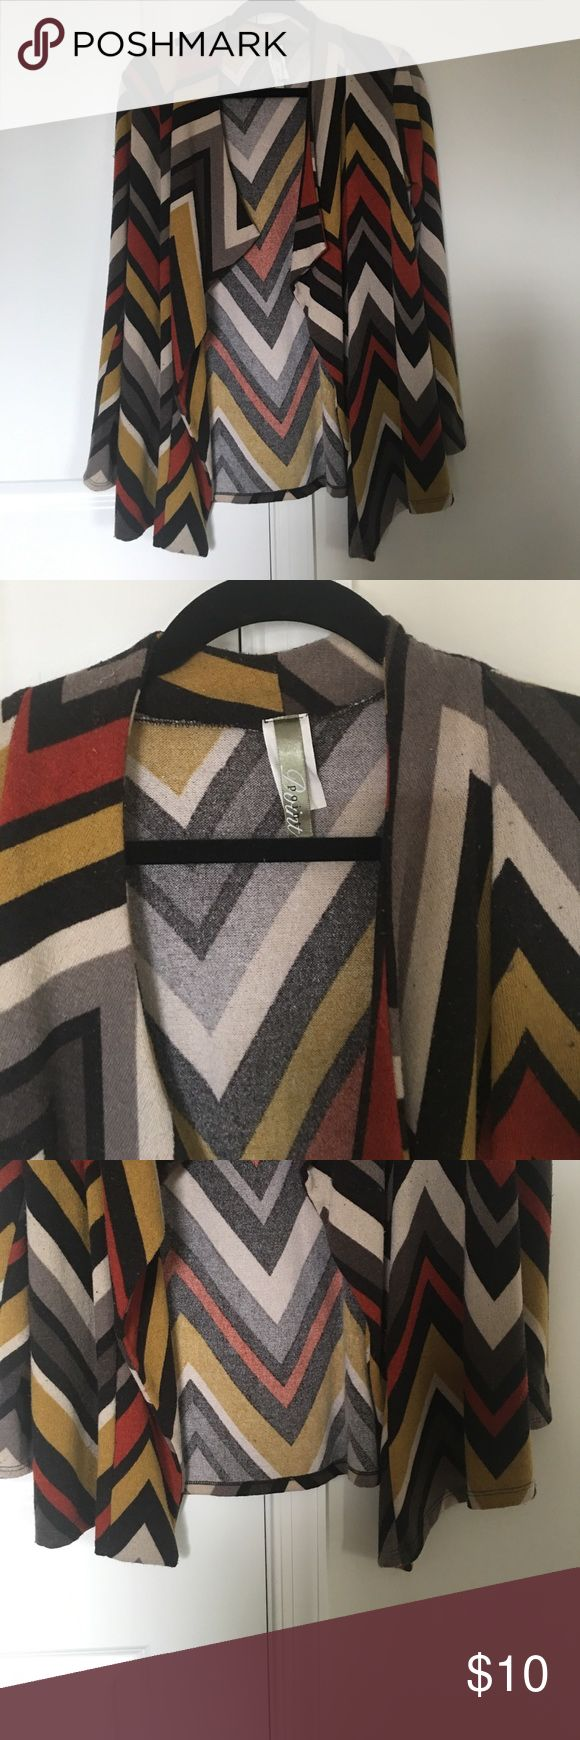 *$13 1 DAY SALE*Boutique Southwestern Cardi Size L Boutique Southwestern Print Point Cardigan Size L - A few fuzz balls.  As always, I am willing to negotiate individually and in bundles! All offers considered. Point Tops